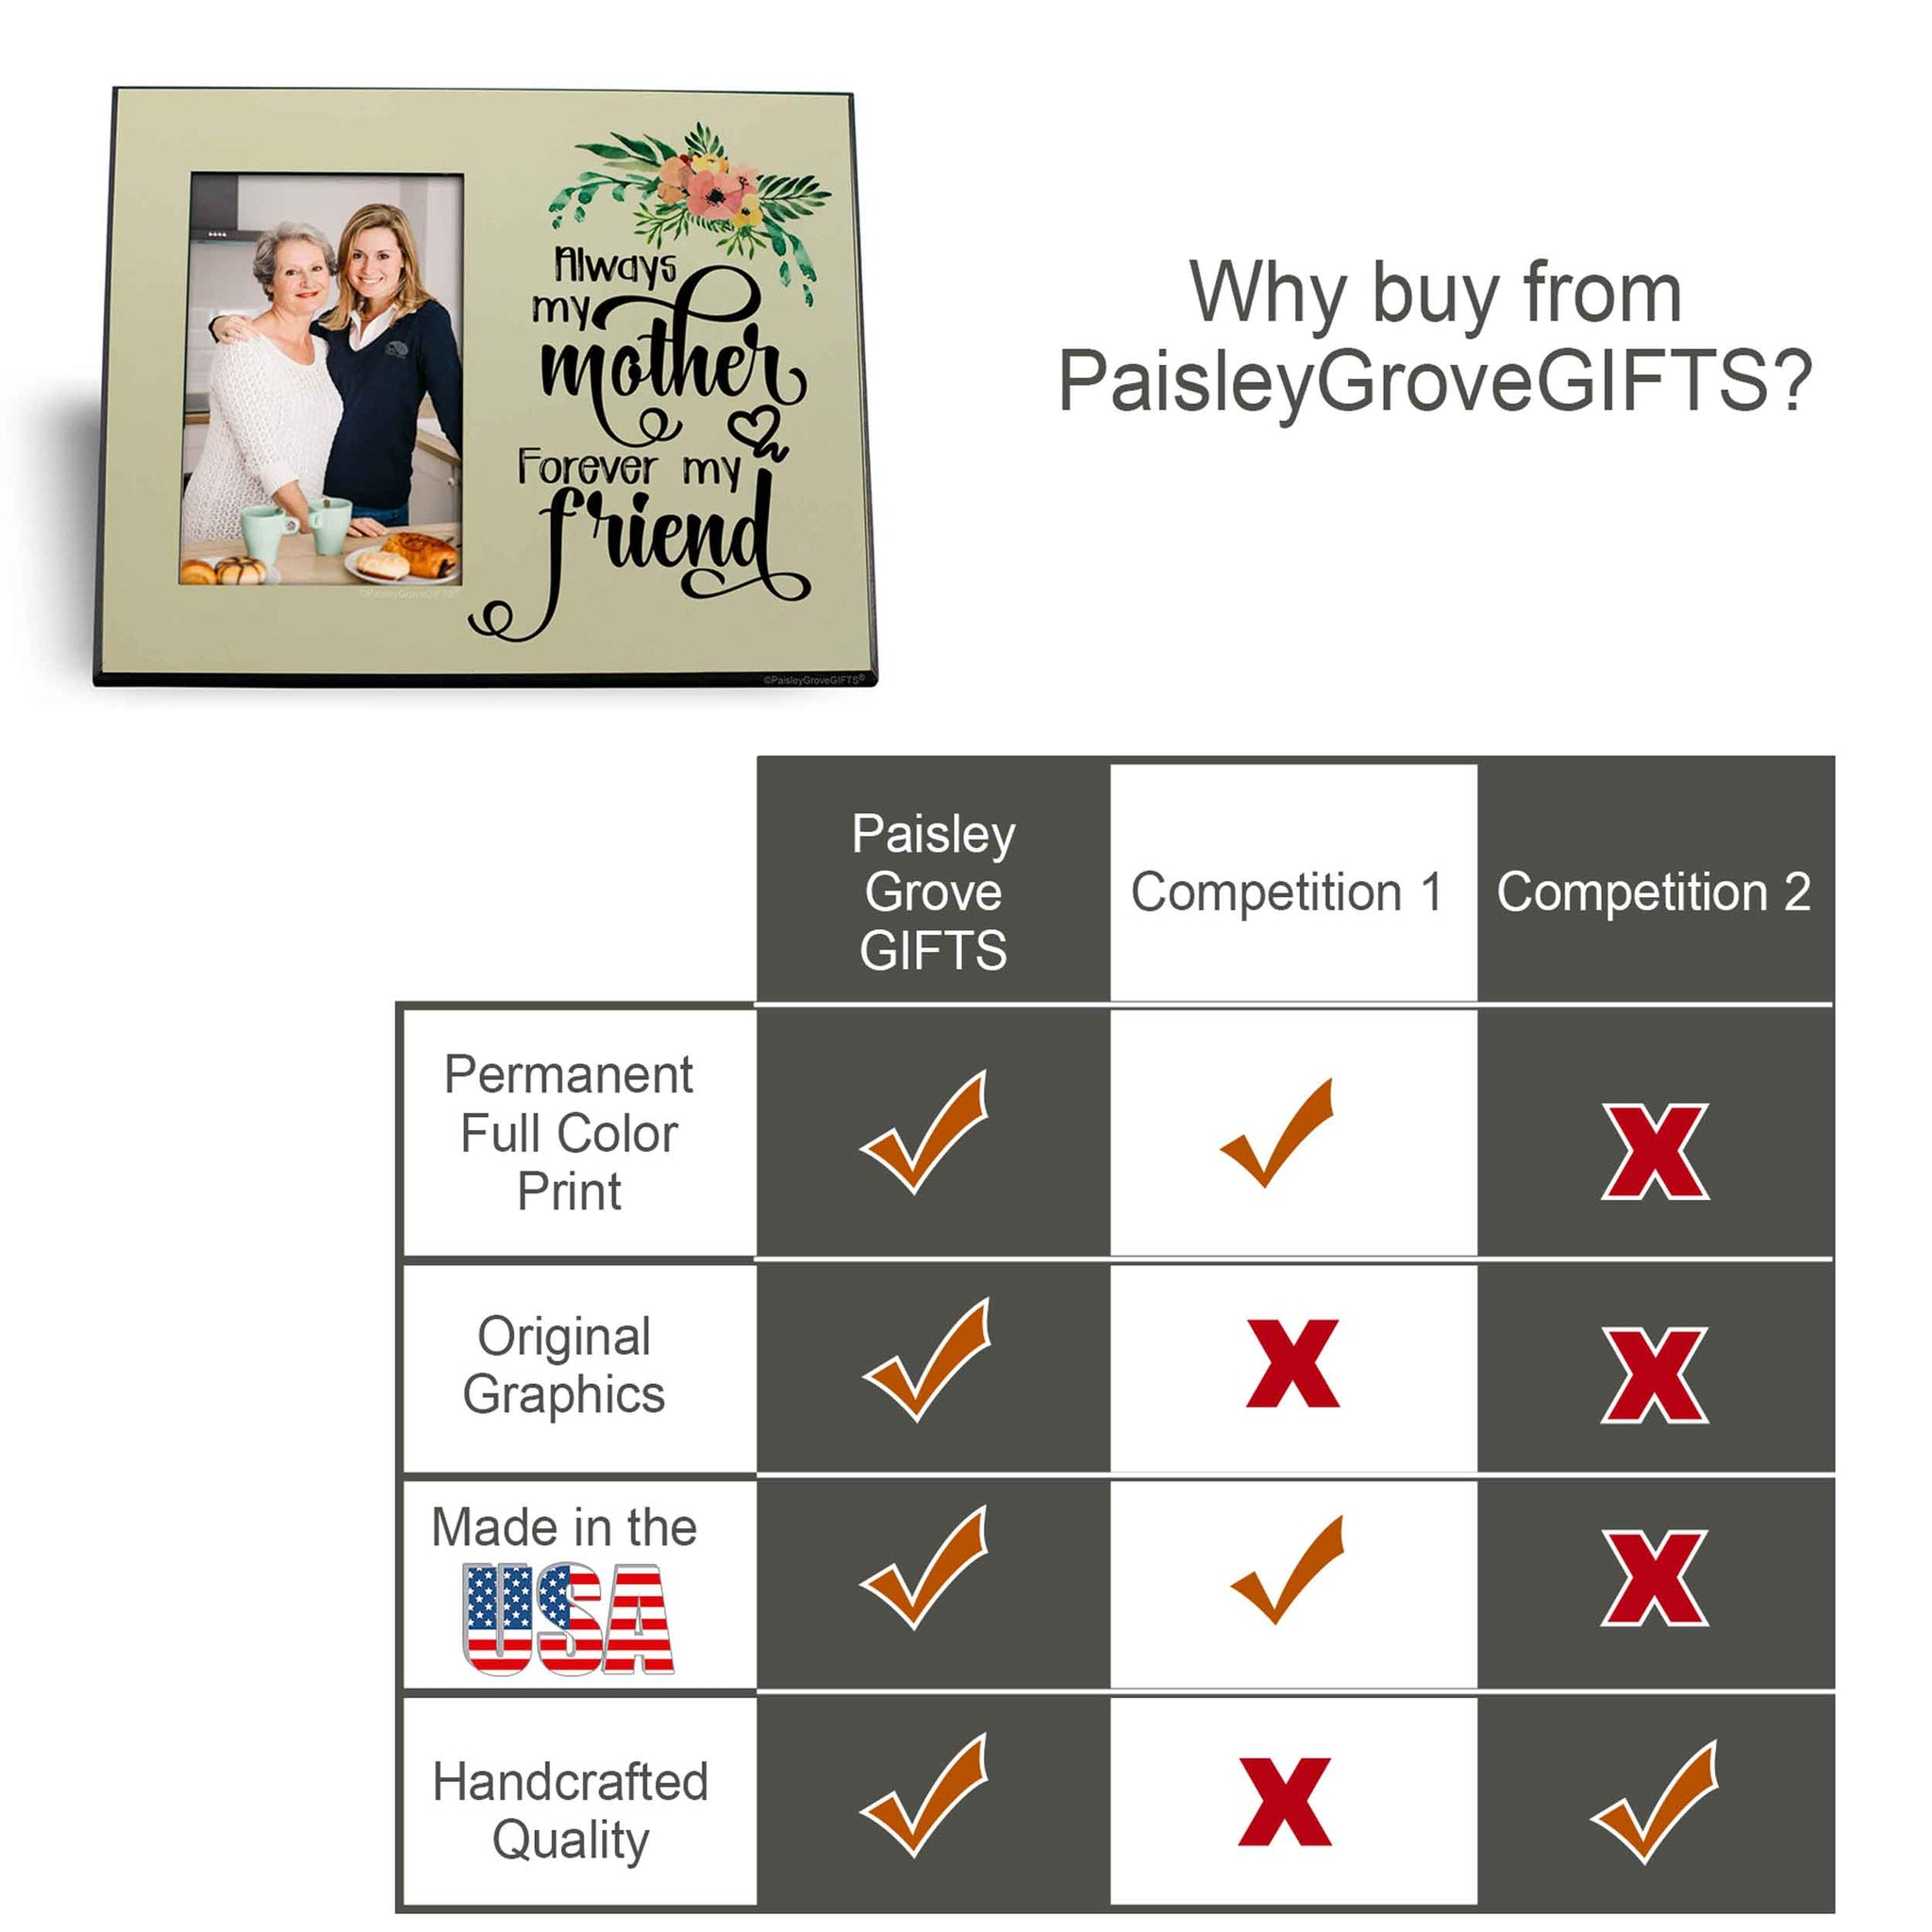 CopyrightPaisleyGroveGIFTS S201d Unique gift for moms and stepmom high quality comparison chart from Paisleygrovegifts